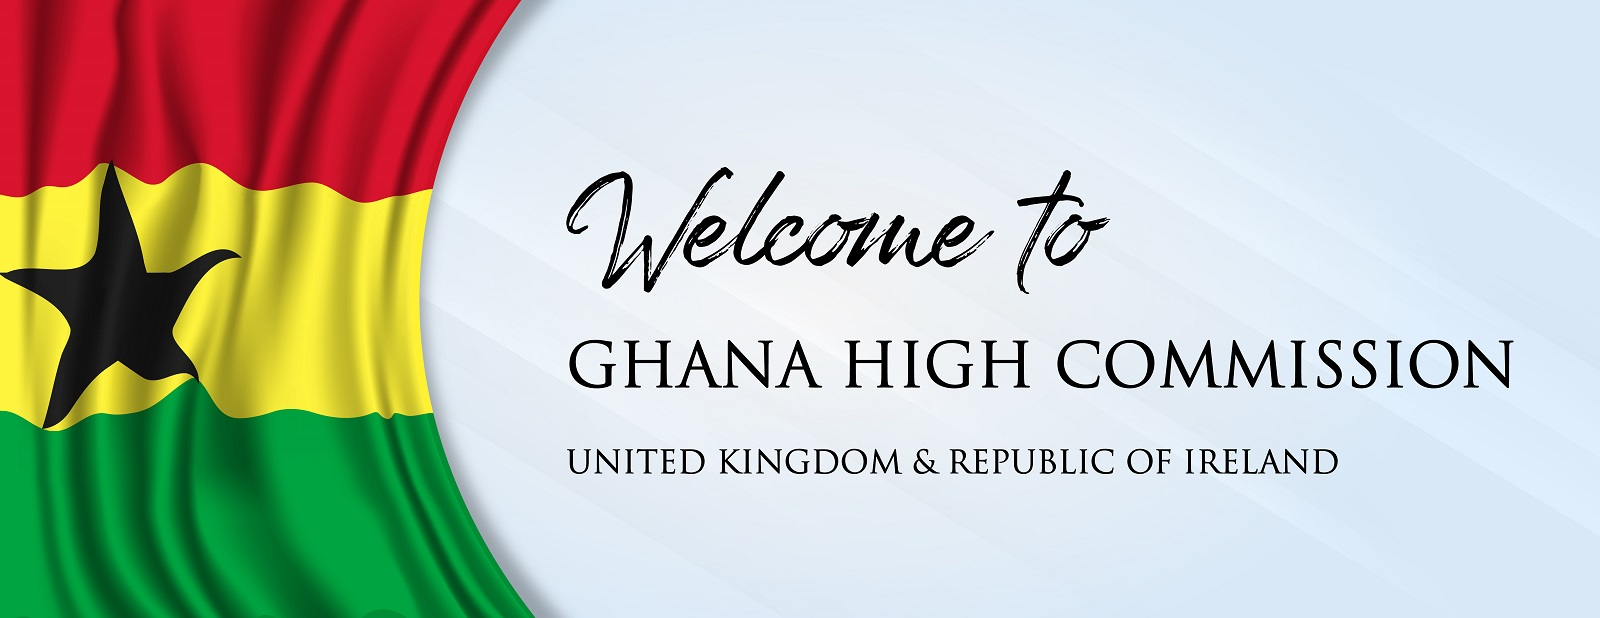 Ghana High Commission UK and Republic of Ireland